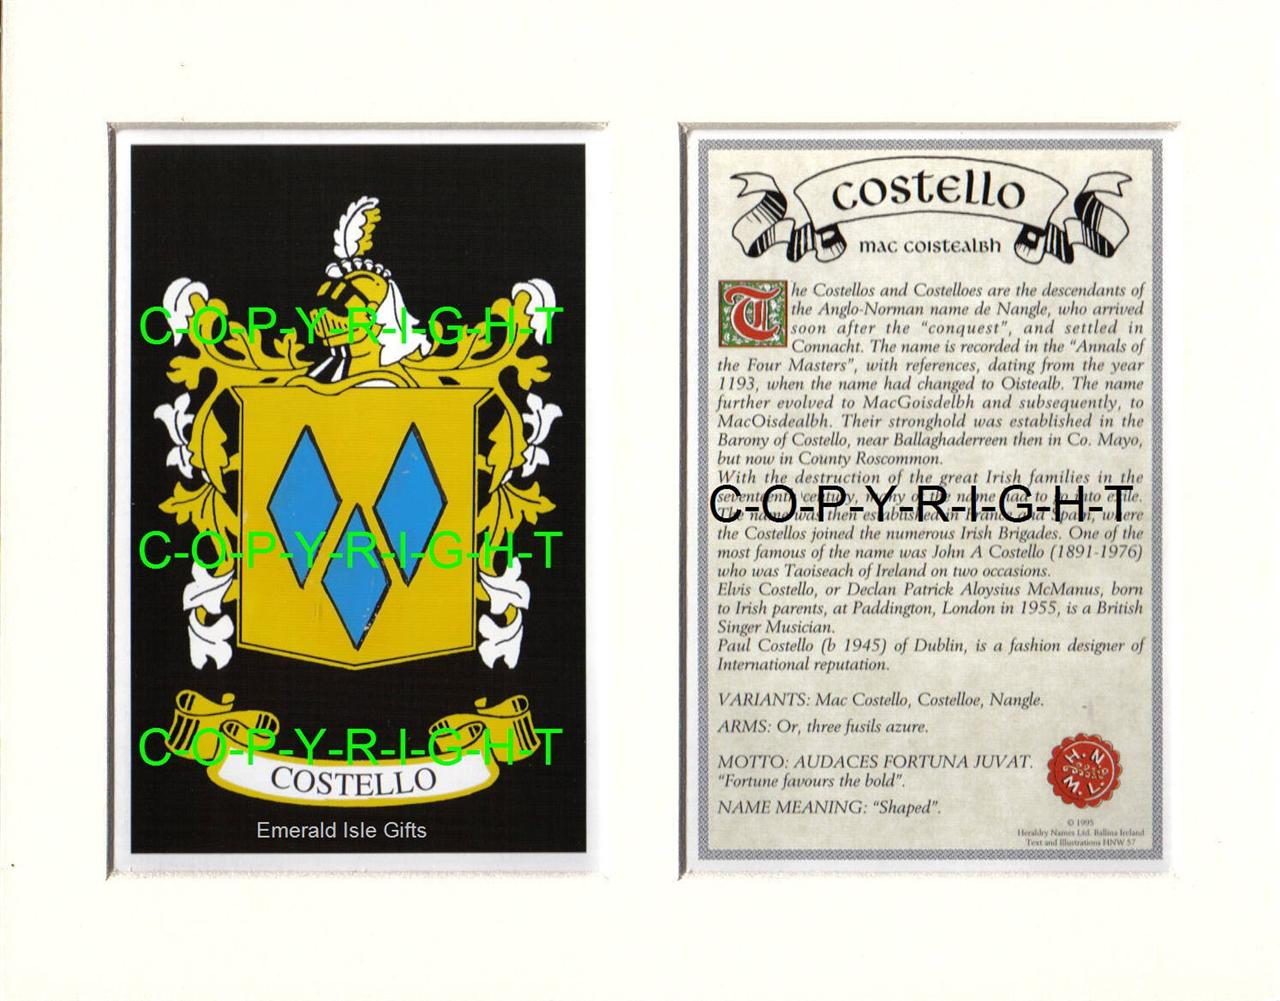 COSTELLO-Family-Coat-of-Arms-Crest-History-Available-Mounted-or-Framed